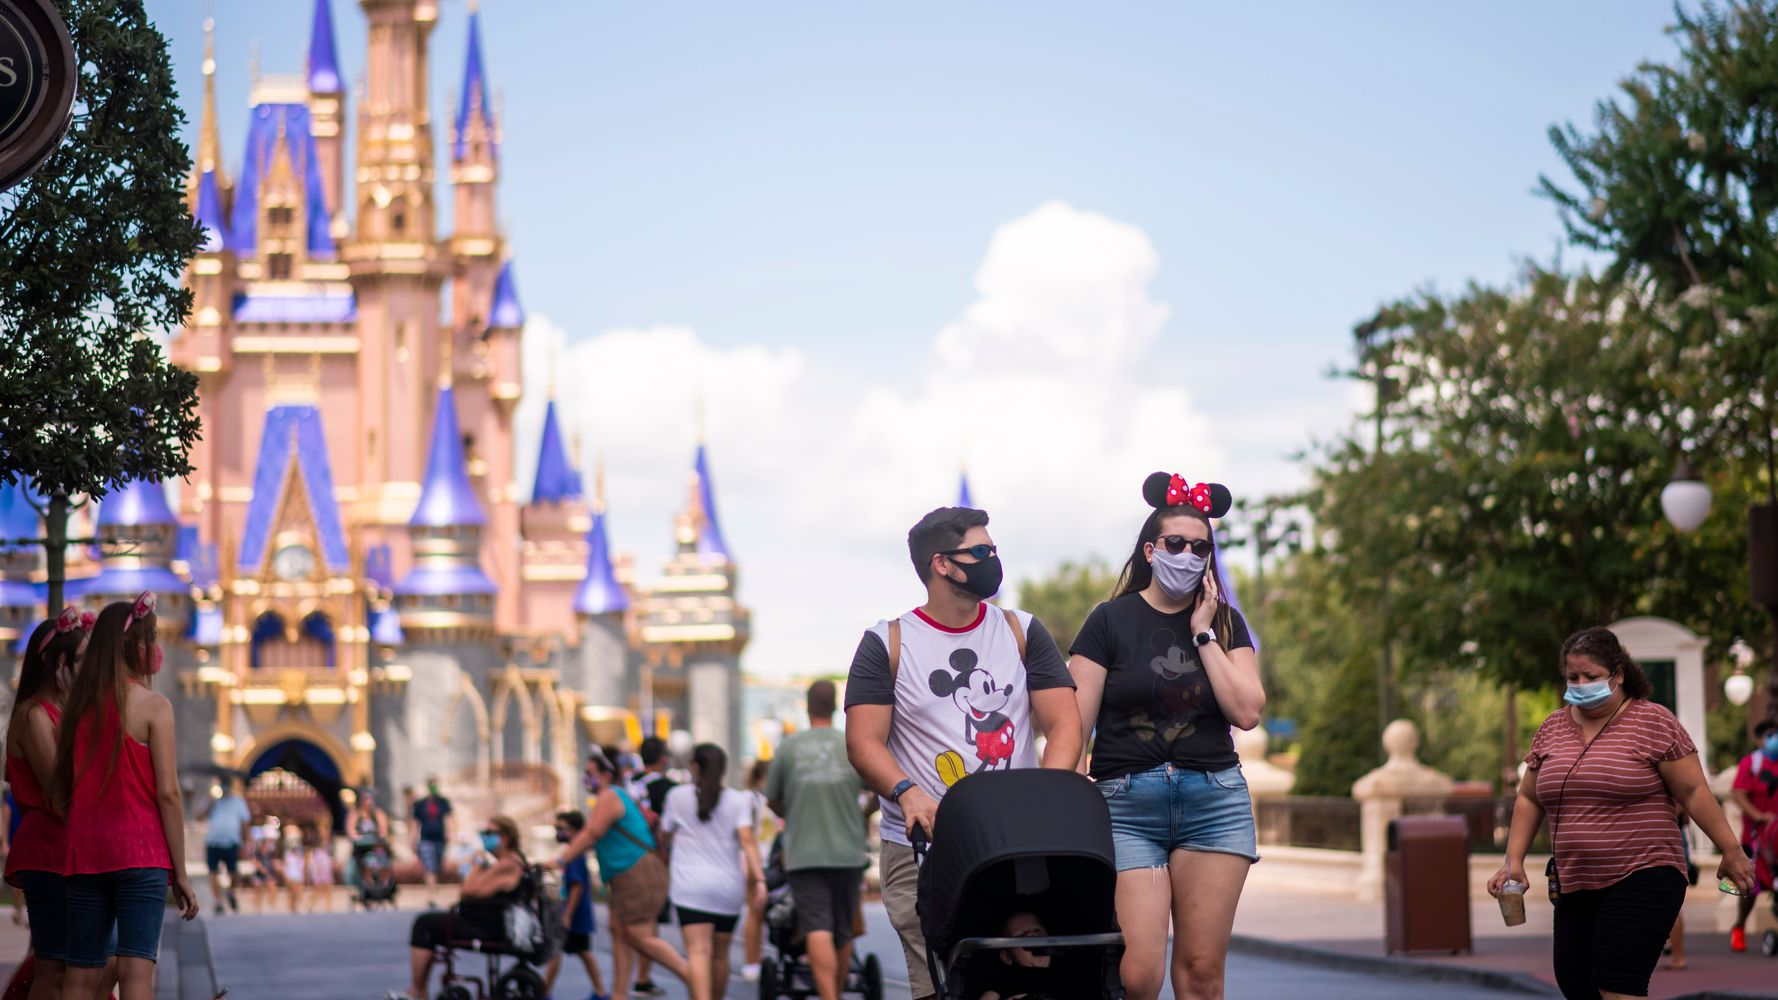 Disney To Lay Off 32,000 Workers As Coronavirus Pandemic Hits Theme Parks - HuffPost